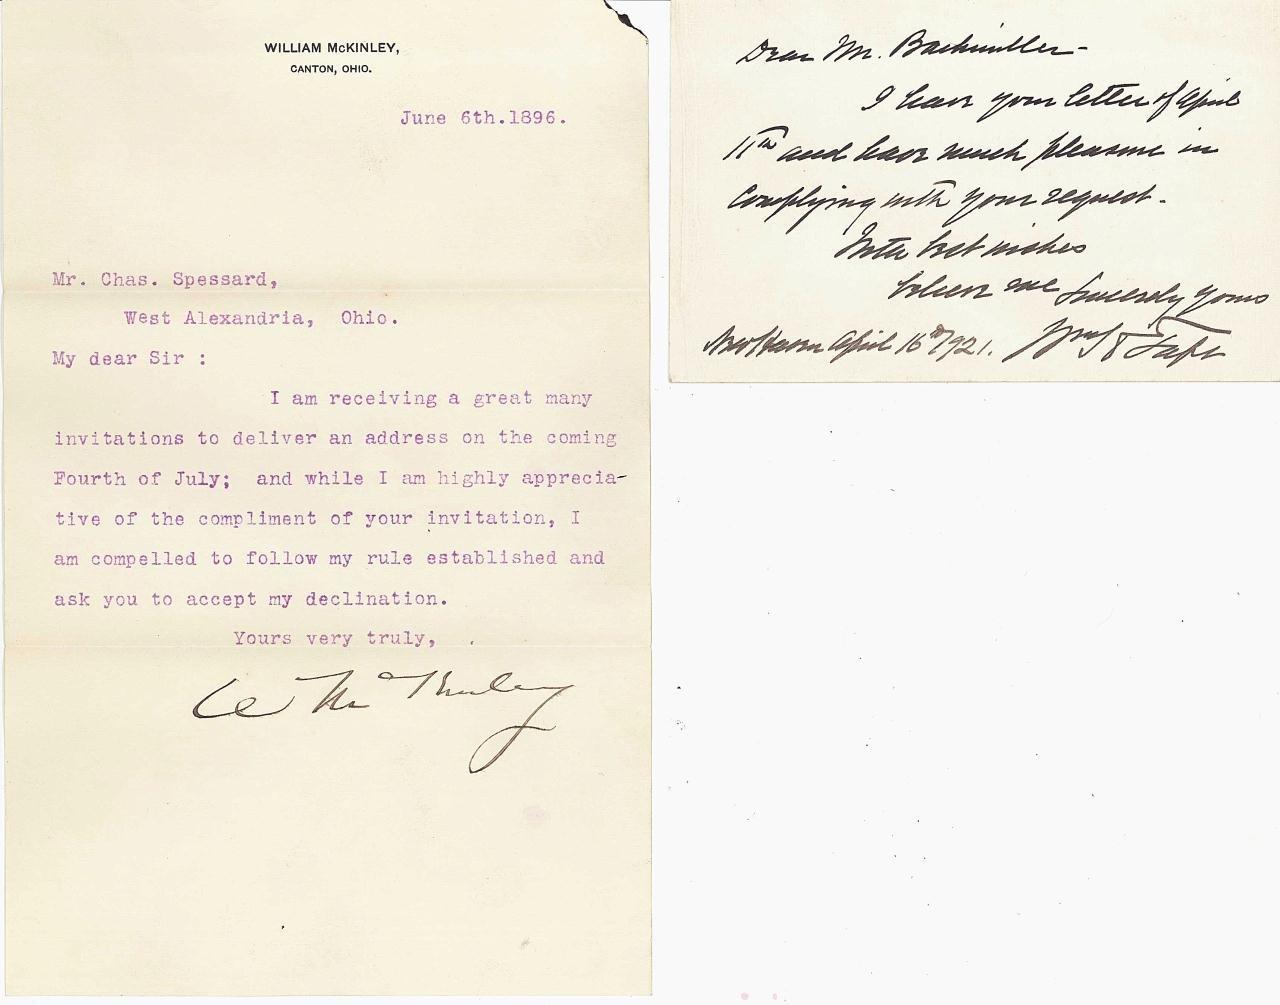 Lot 354: 2 Presidential Sgd Documents, Taft and McKinley